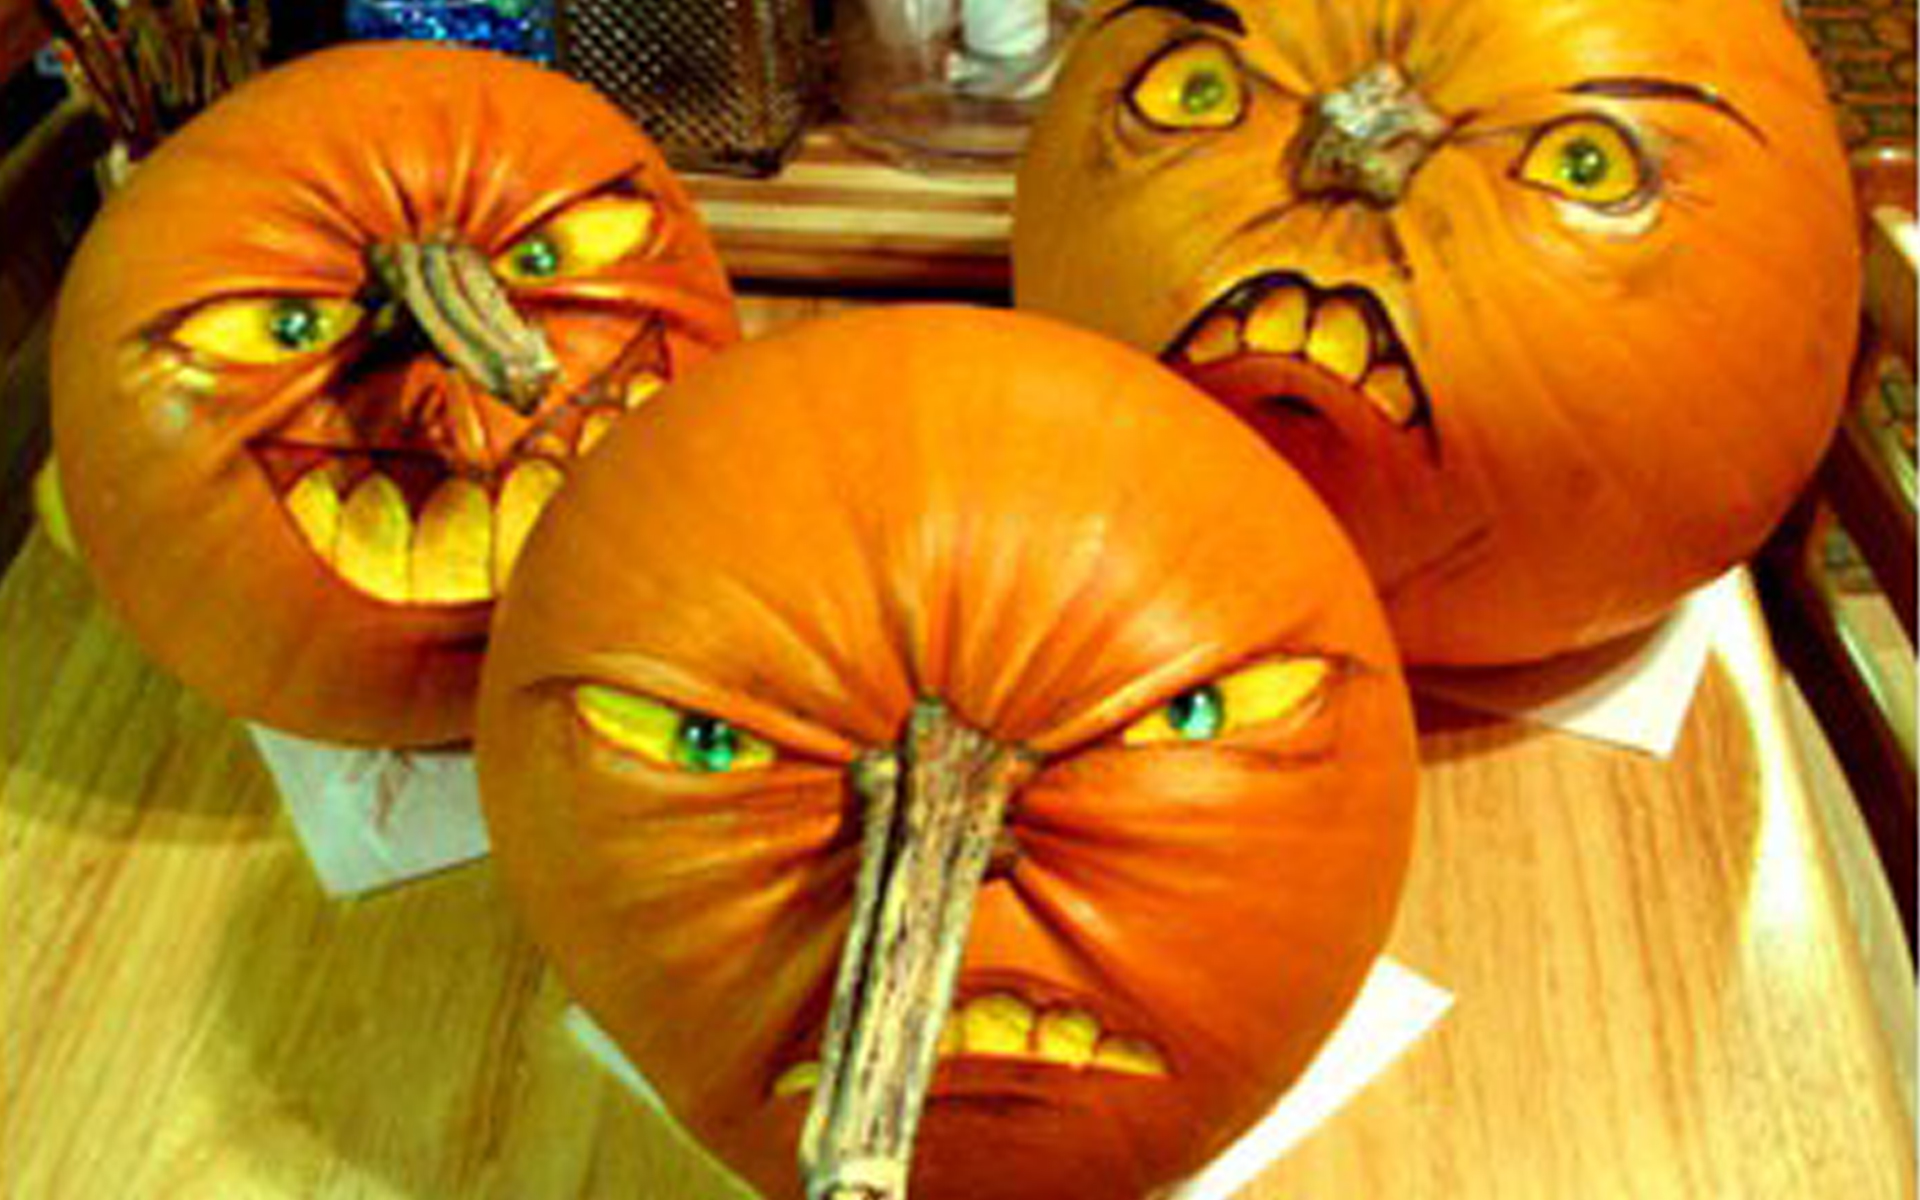 Pinocchio Halloween Pumpkin Carvings Creative Ads And More